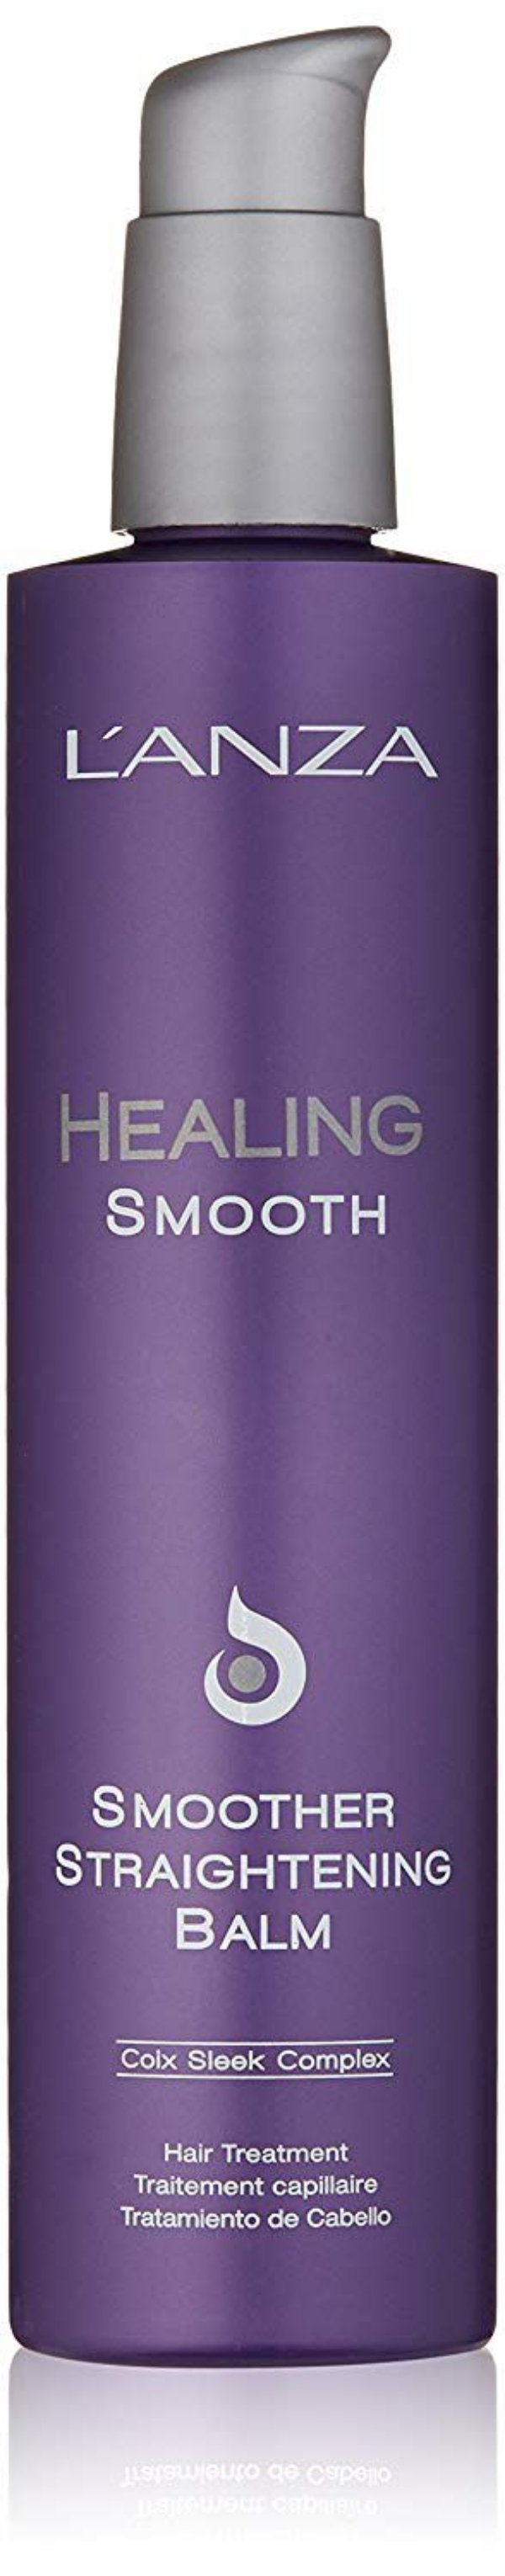 Modelador Lanza Healing Smooth Smoother Straightening Balm 250ml